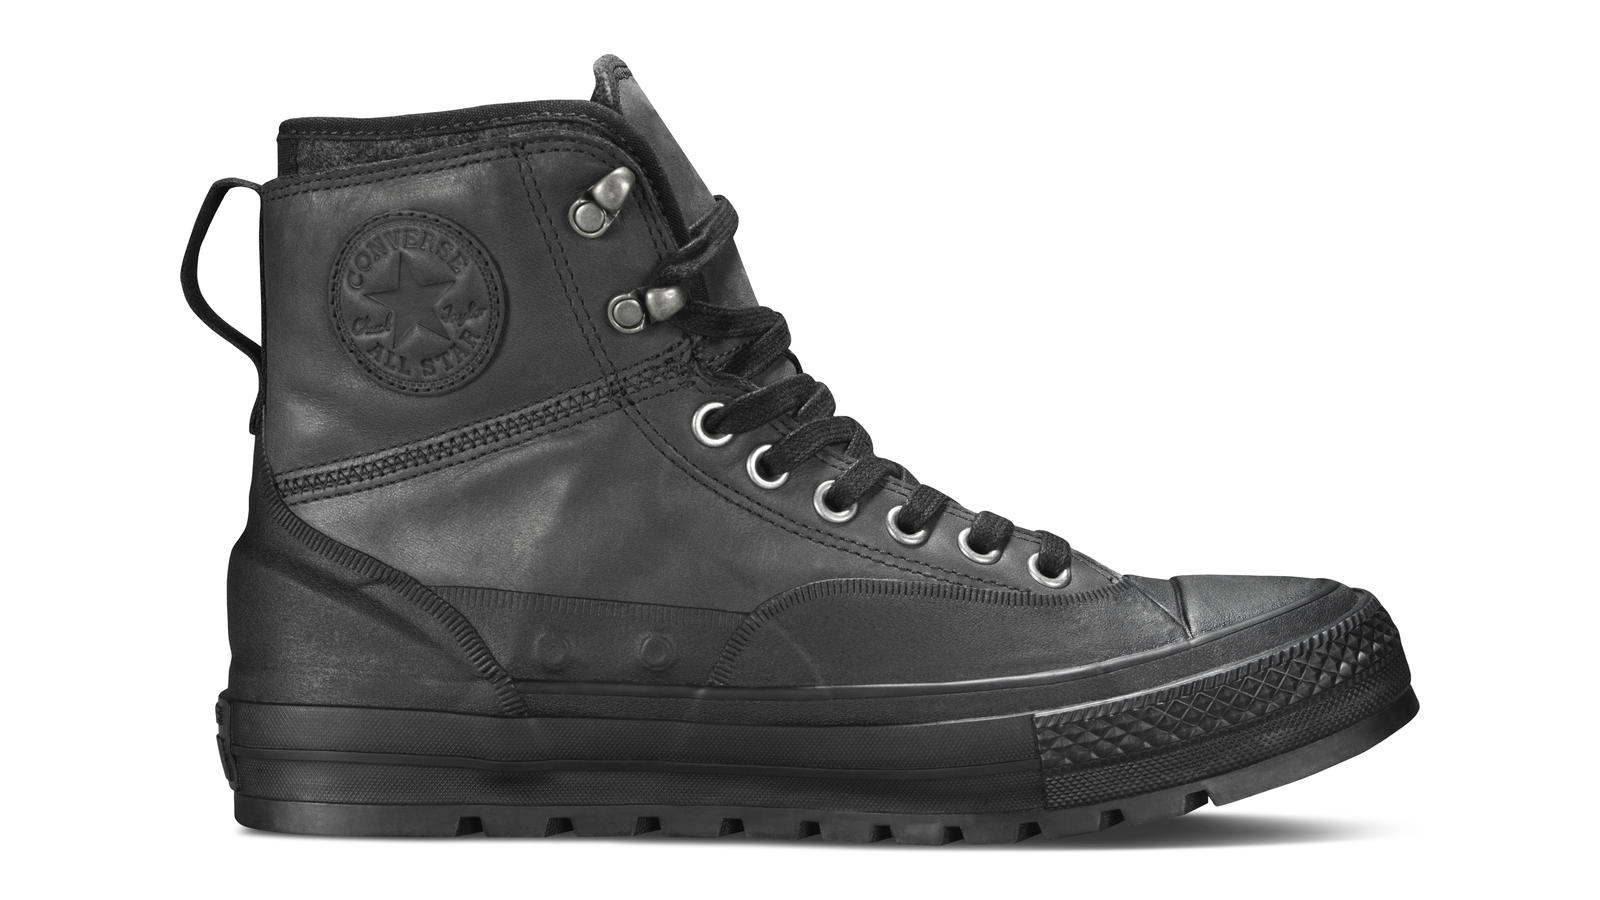 Converse Shoes For Women Black On Amazon